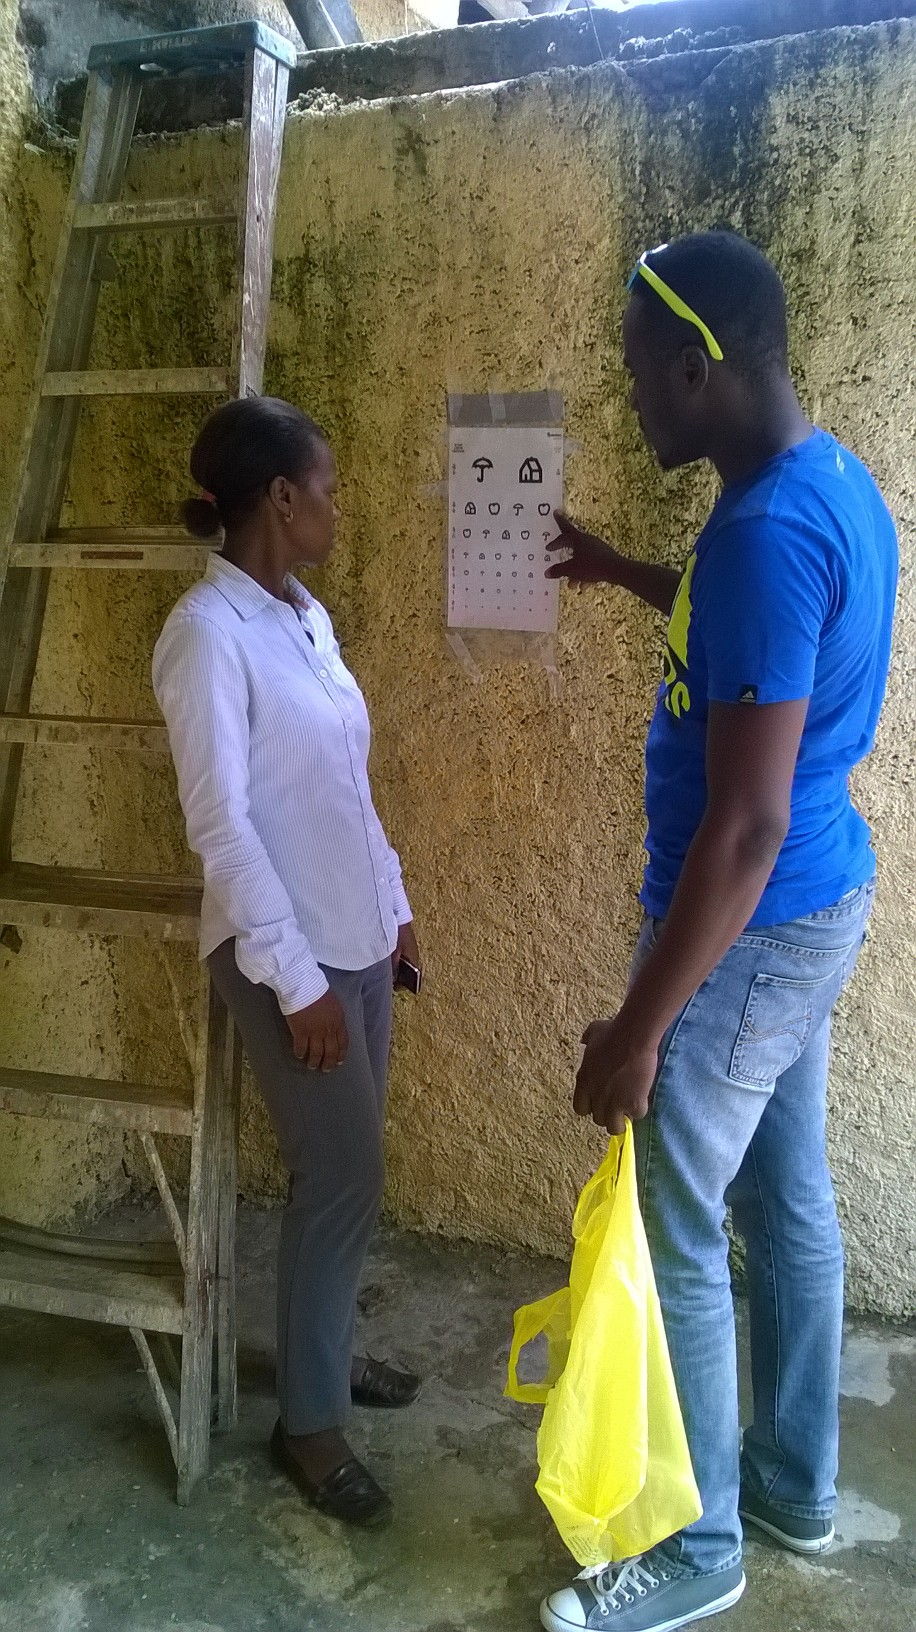 Miss_Jeanette_Labenture_from_Bodarie_National_Health_Center_receiving_instructions_from_Assistant_Ericsson_a_graduate_from_University_of_Guyana_August_25_15_WP_20150825_008.jpg